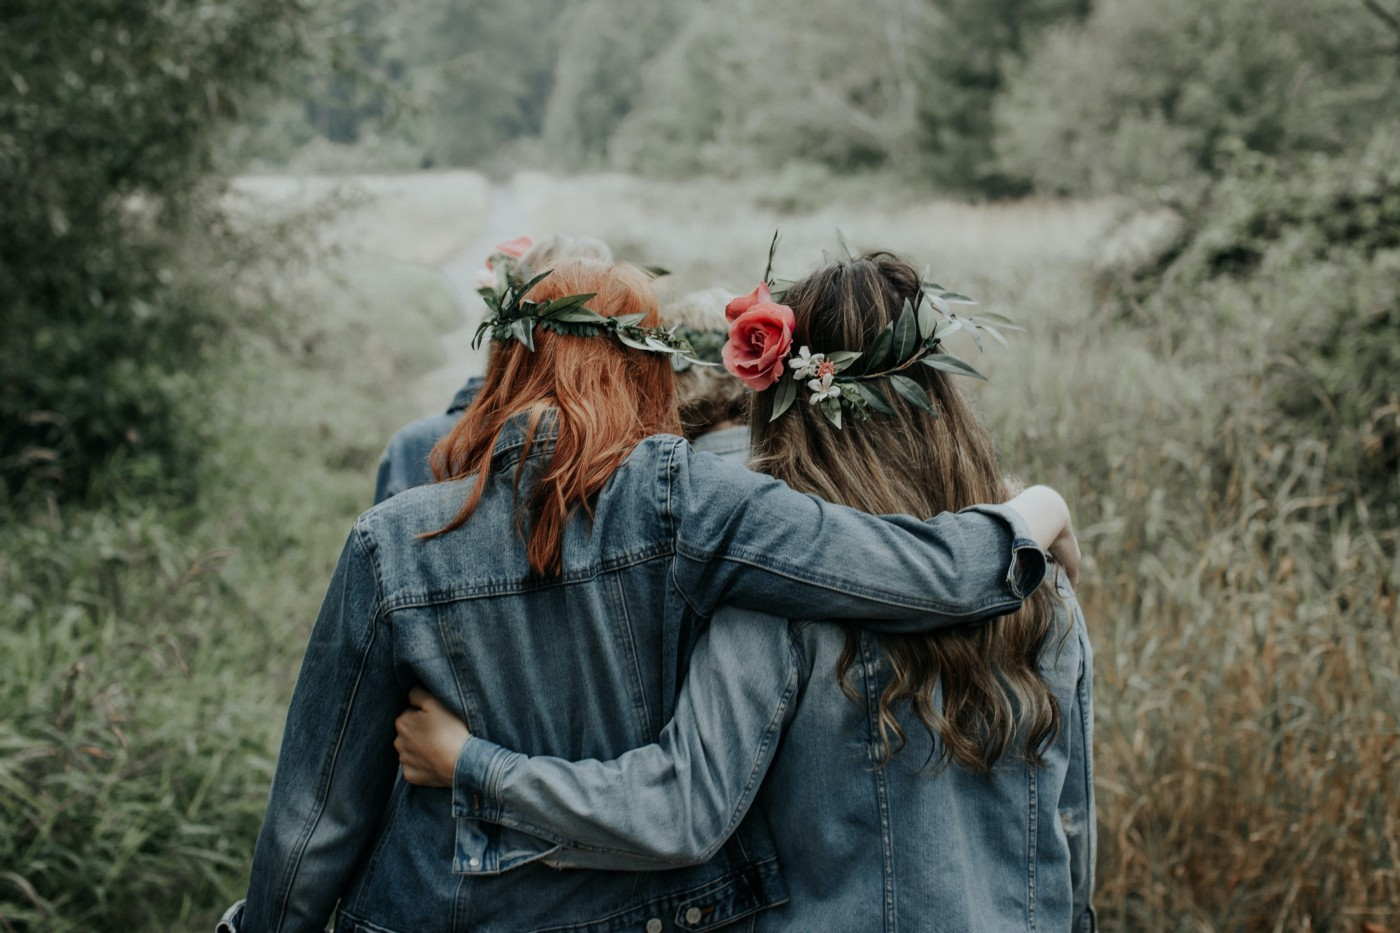 10 Signs You've Outgrown a Friend and What to Do About It